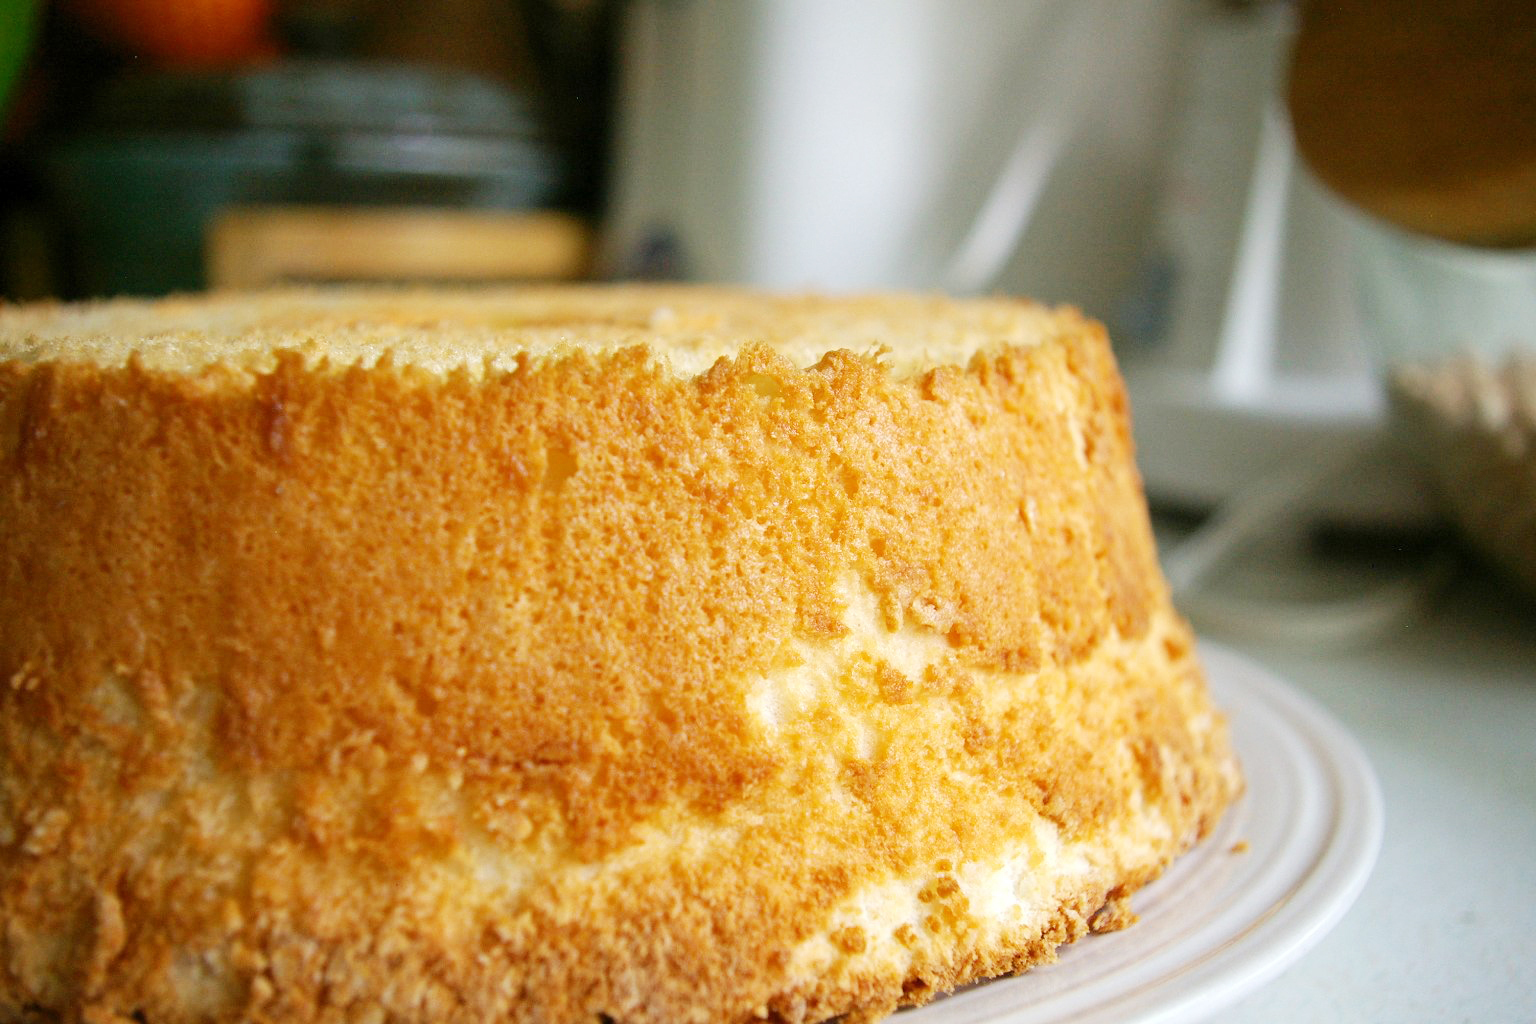 Sink Your Teeth Into This Super Moist, Cannabis-Infused Lemon Blundt Cake